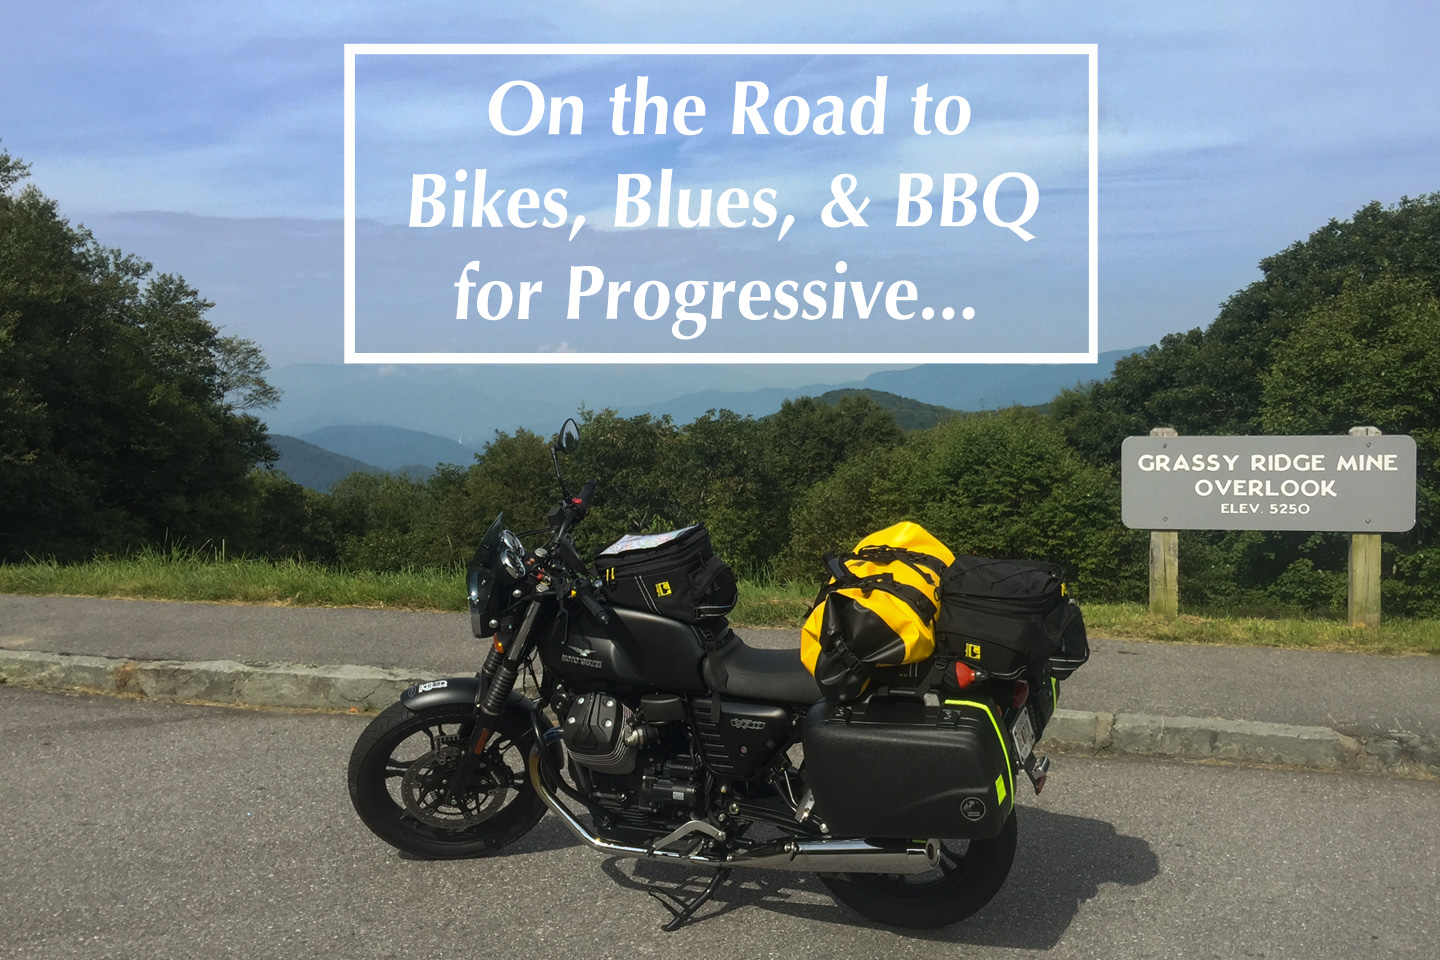 On the Road to Bikes, Blues, & BBQ for Progressive